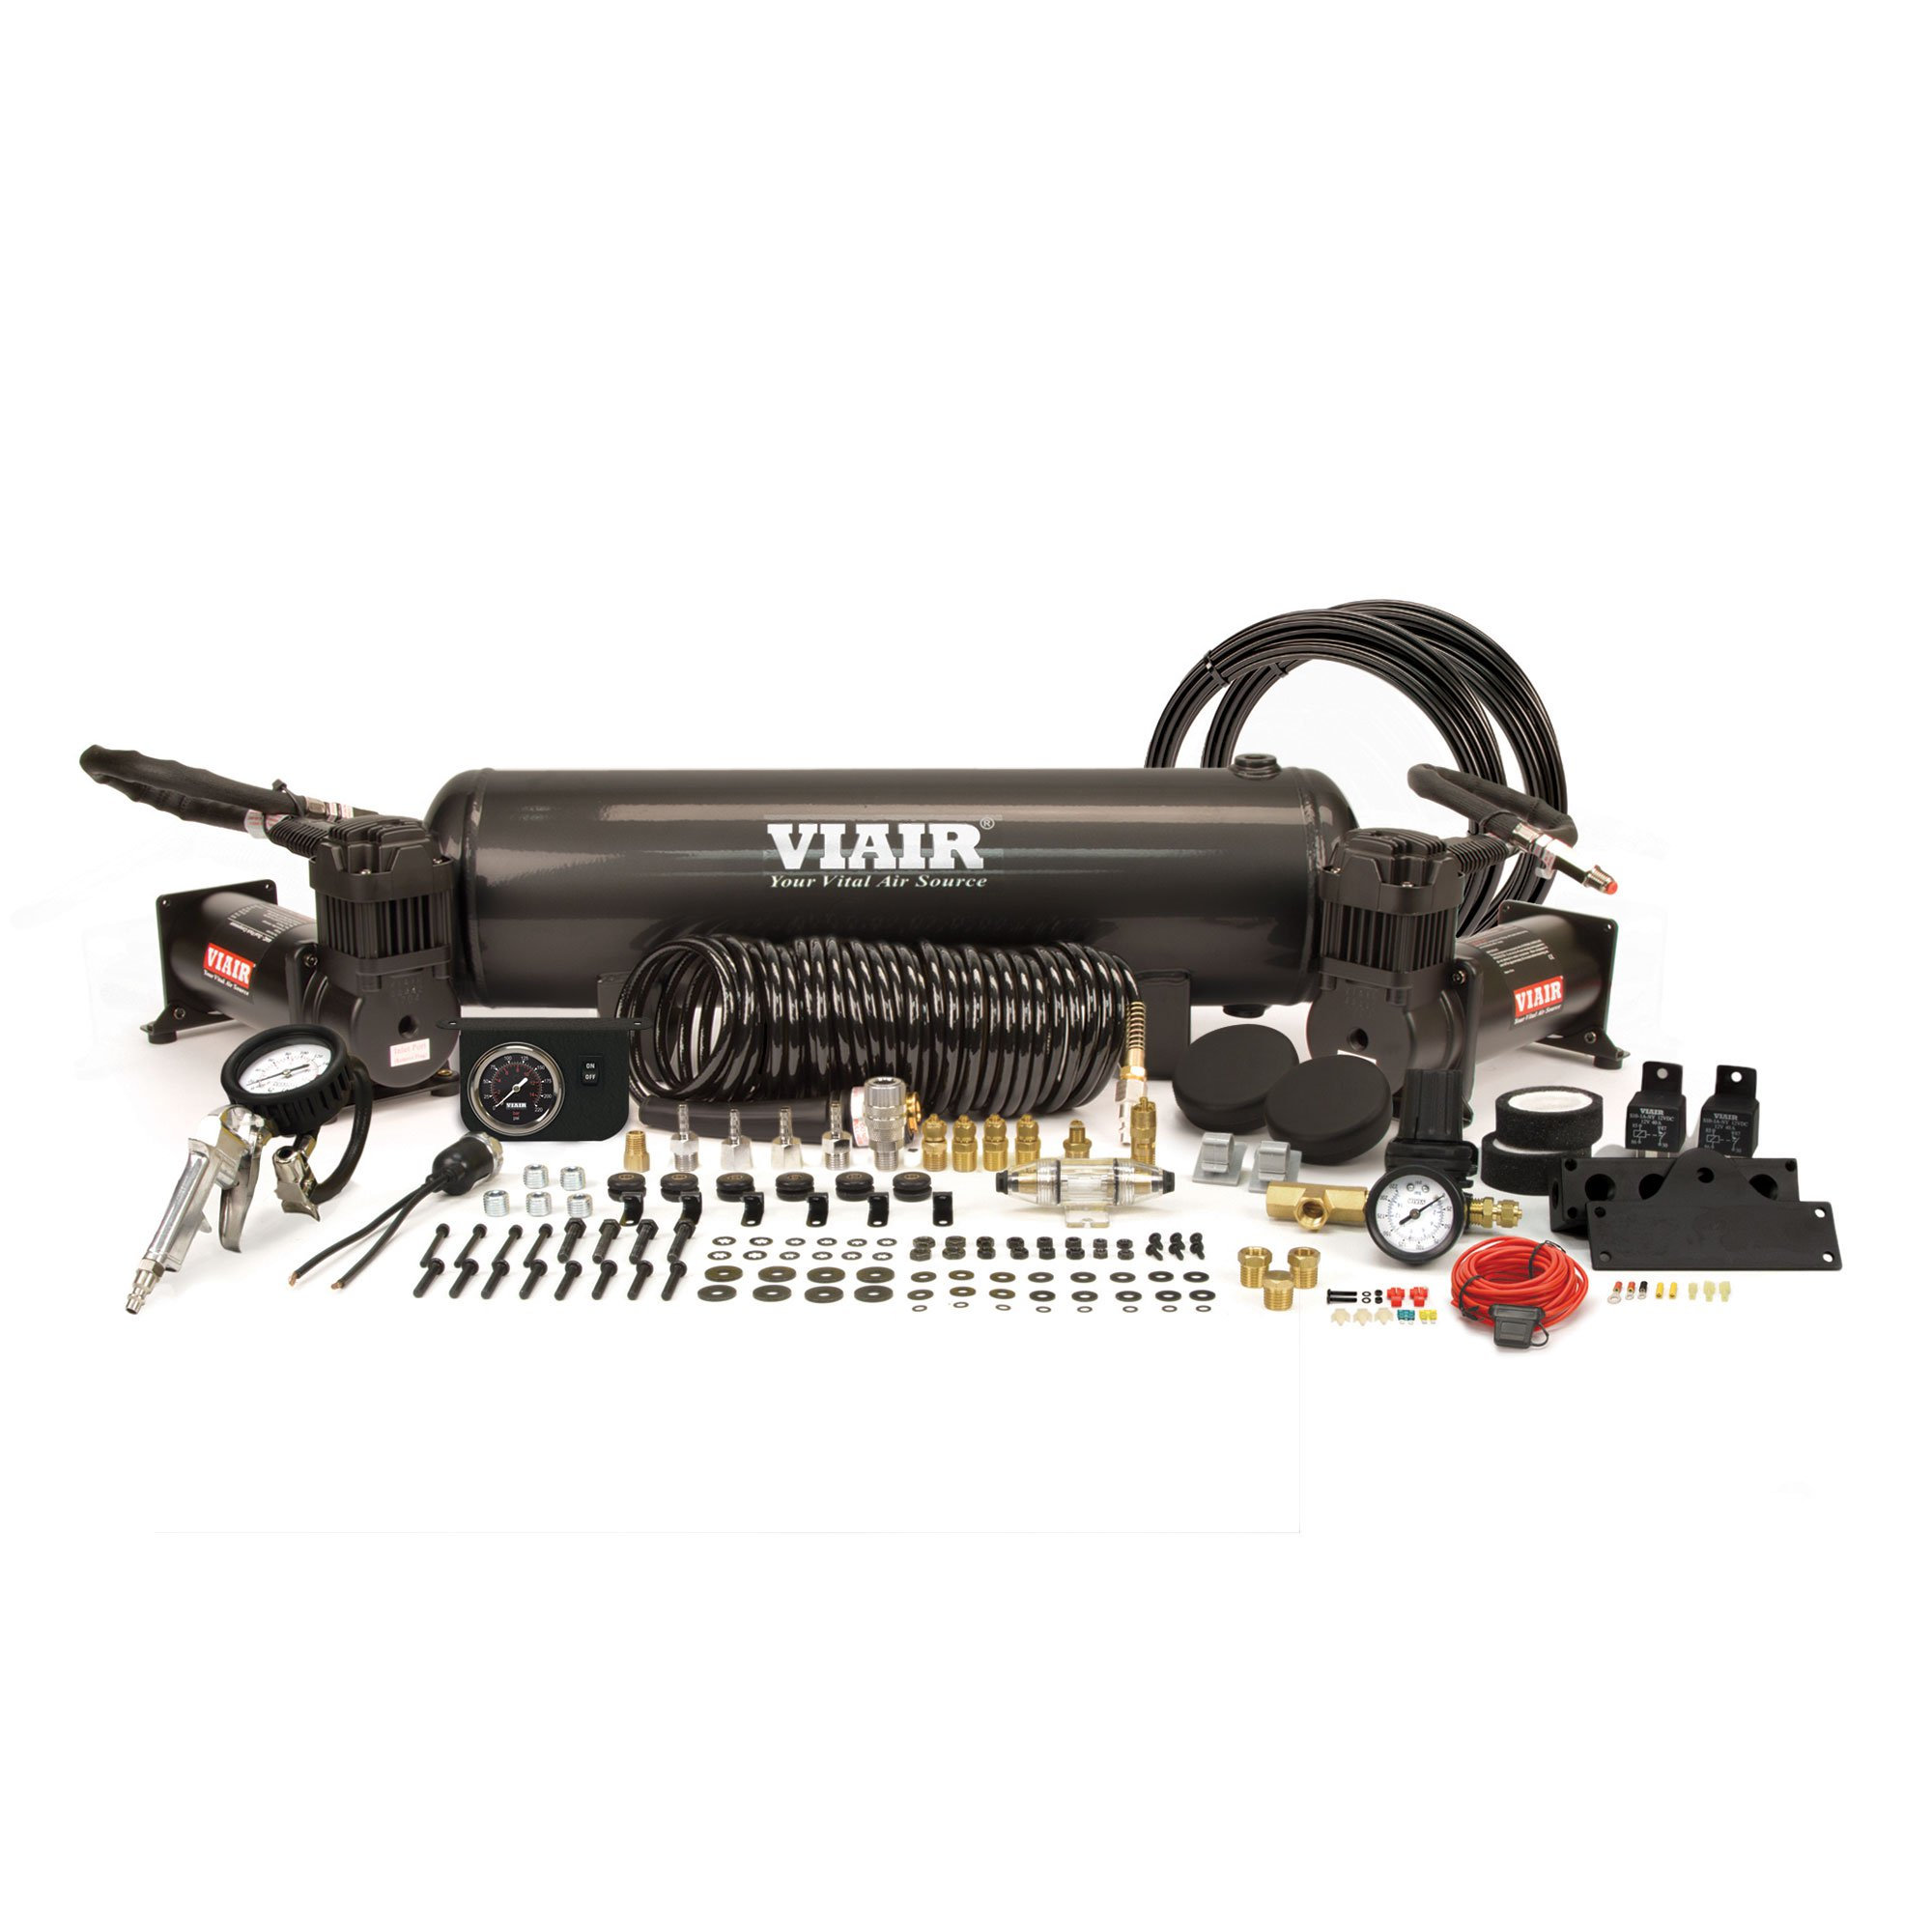 VIAIR 20020 Dual 444C 200 PSI OBA On Board Air Compressor System, Stealth Black